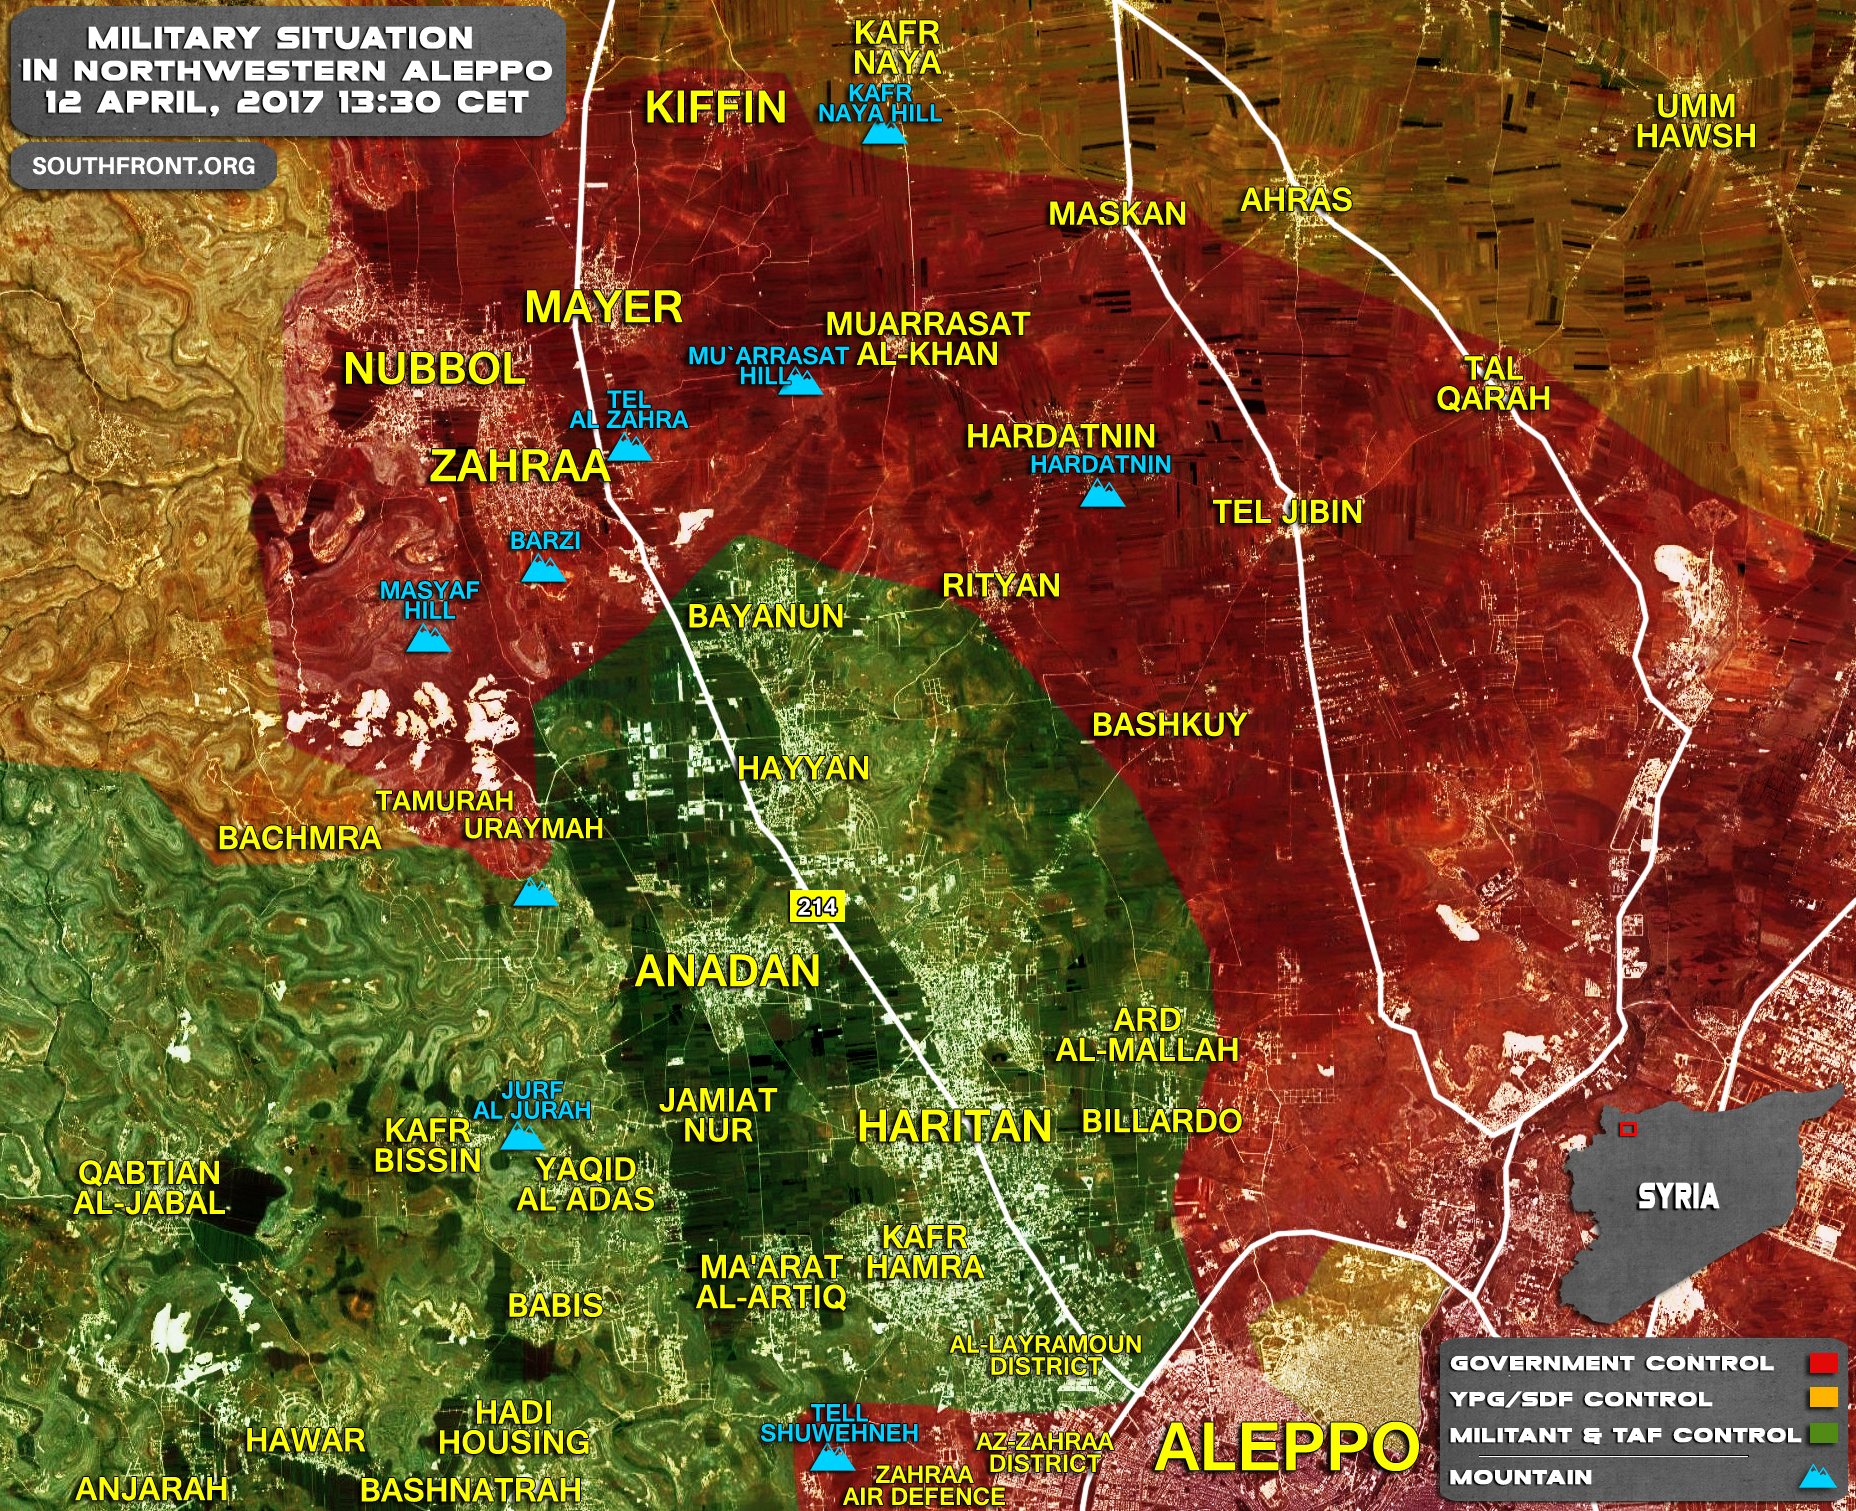 Military Situation In Northwestern Aleppo Countryside On April 12, 2017 (Map Update)